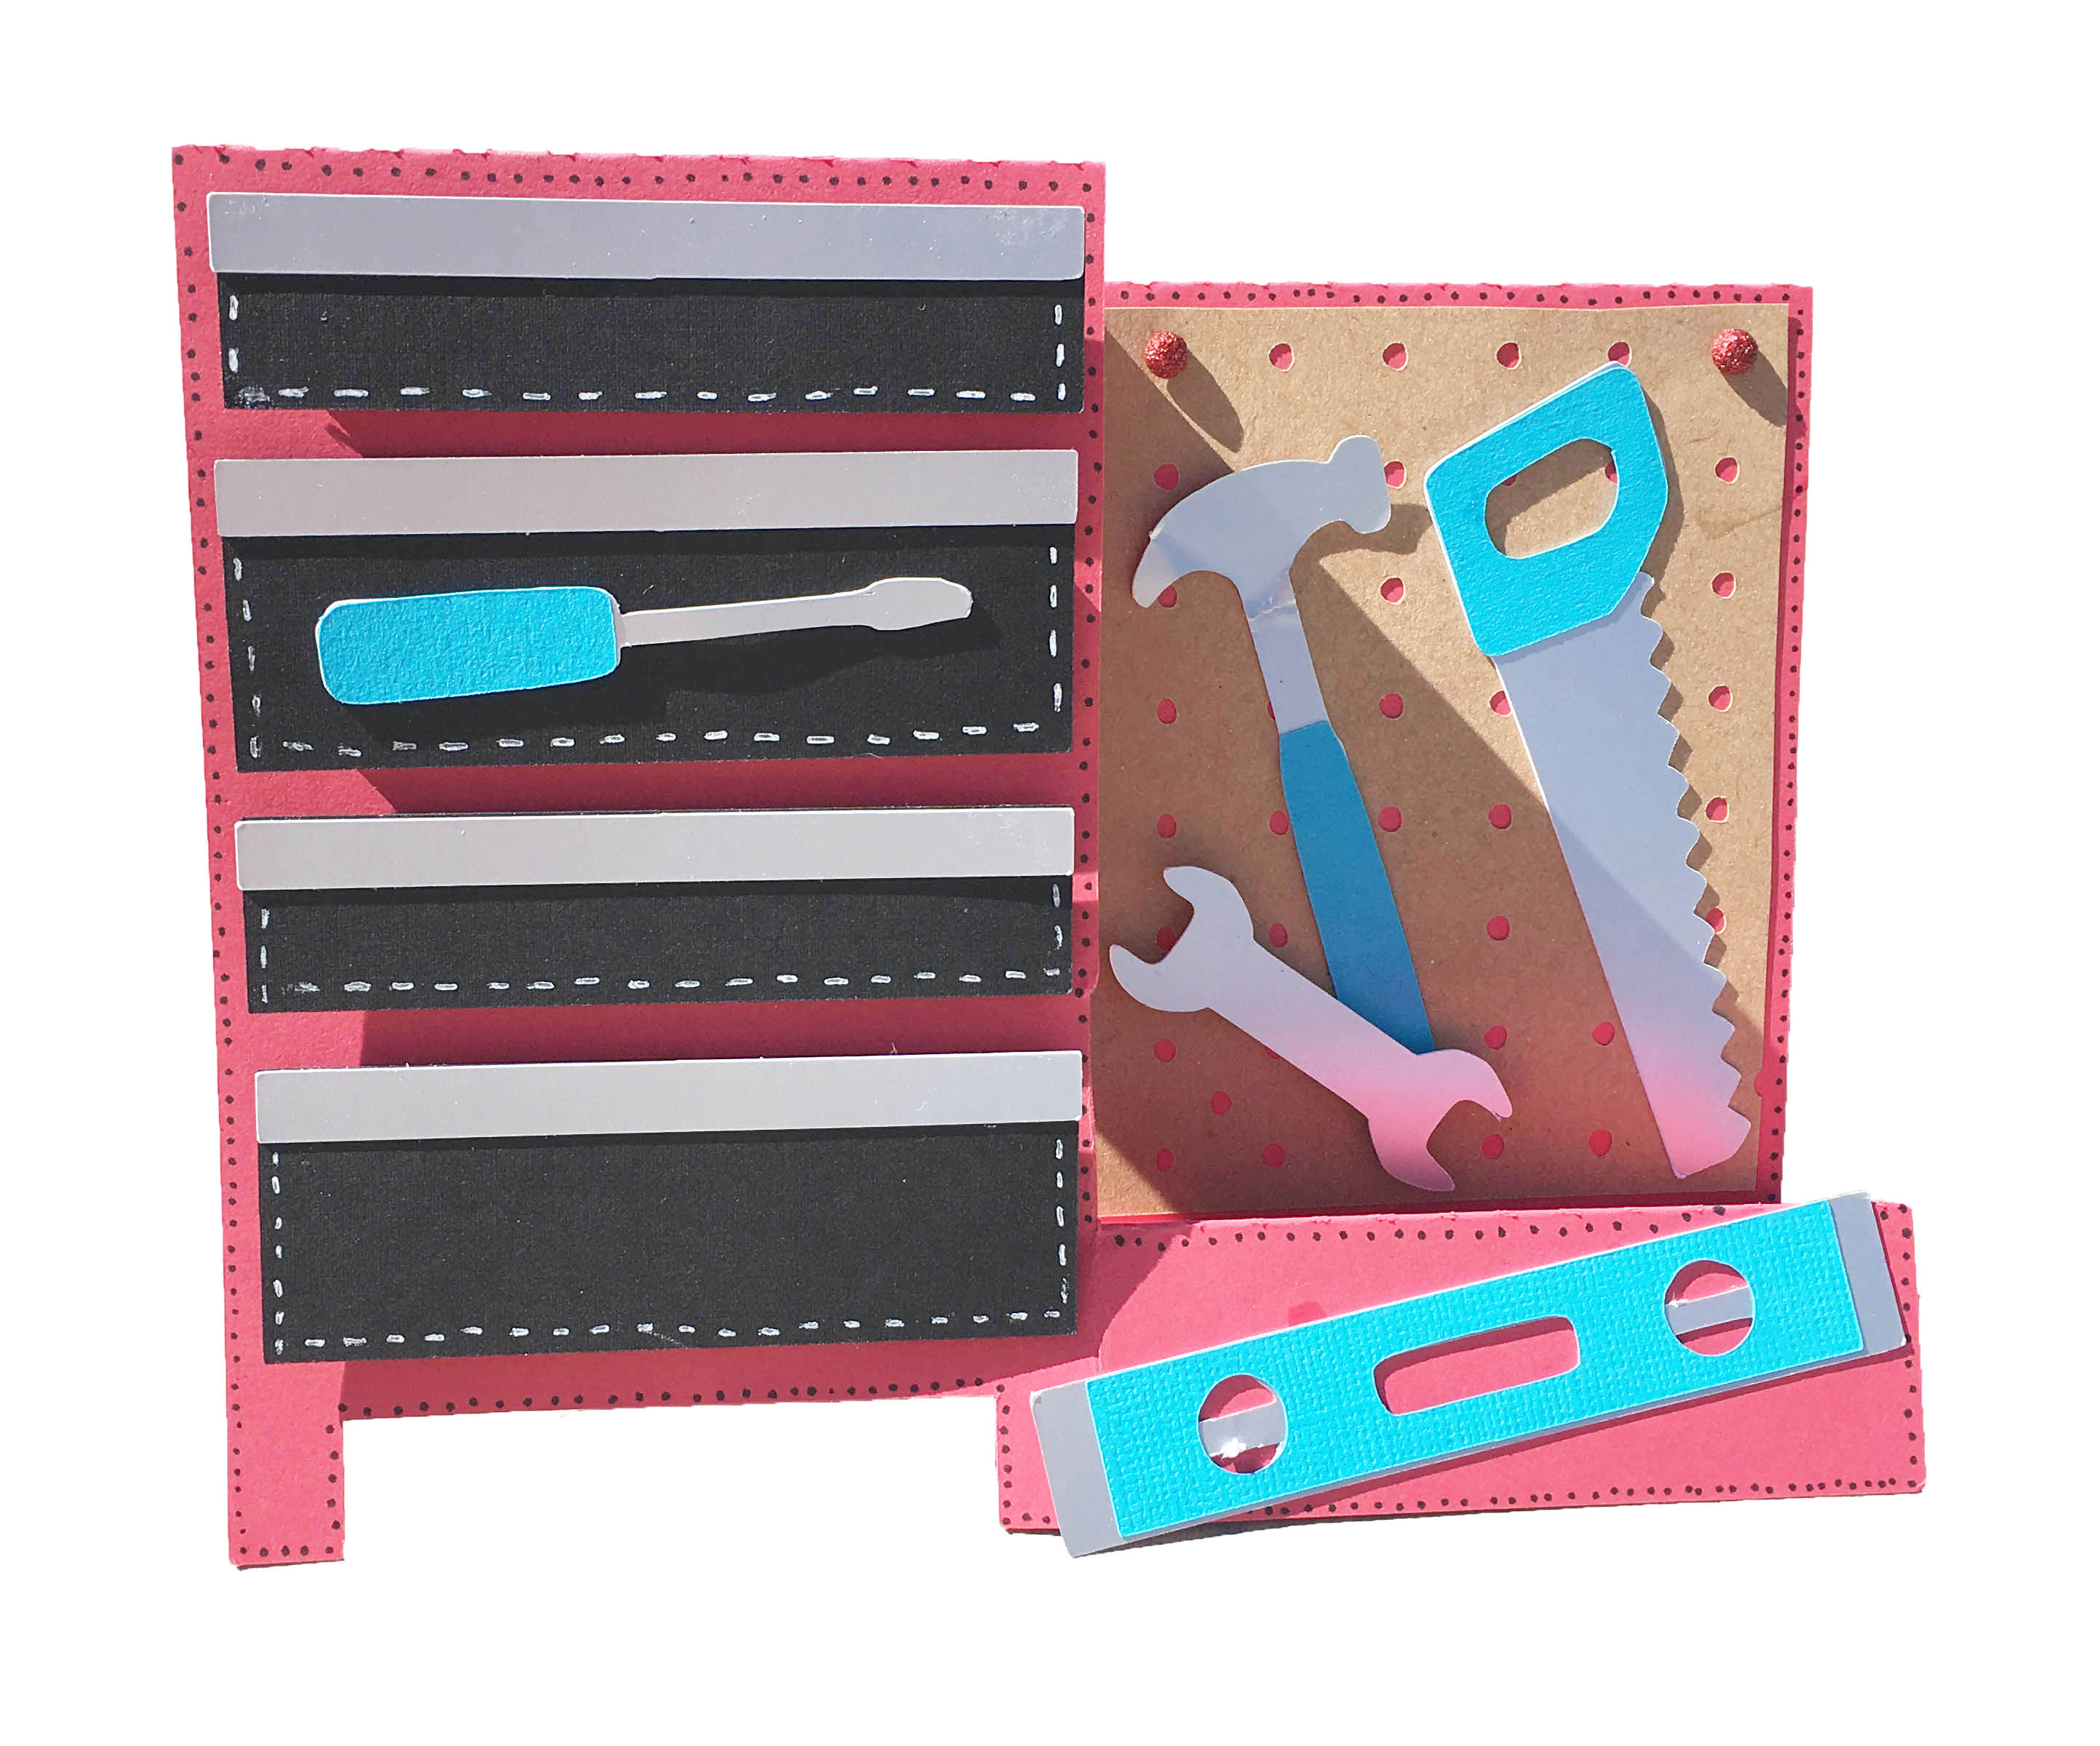 Fathers Day tool box card